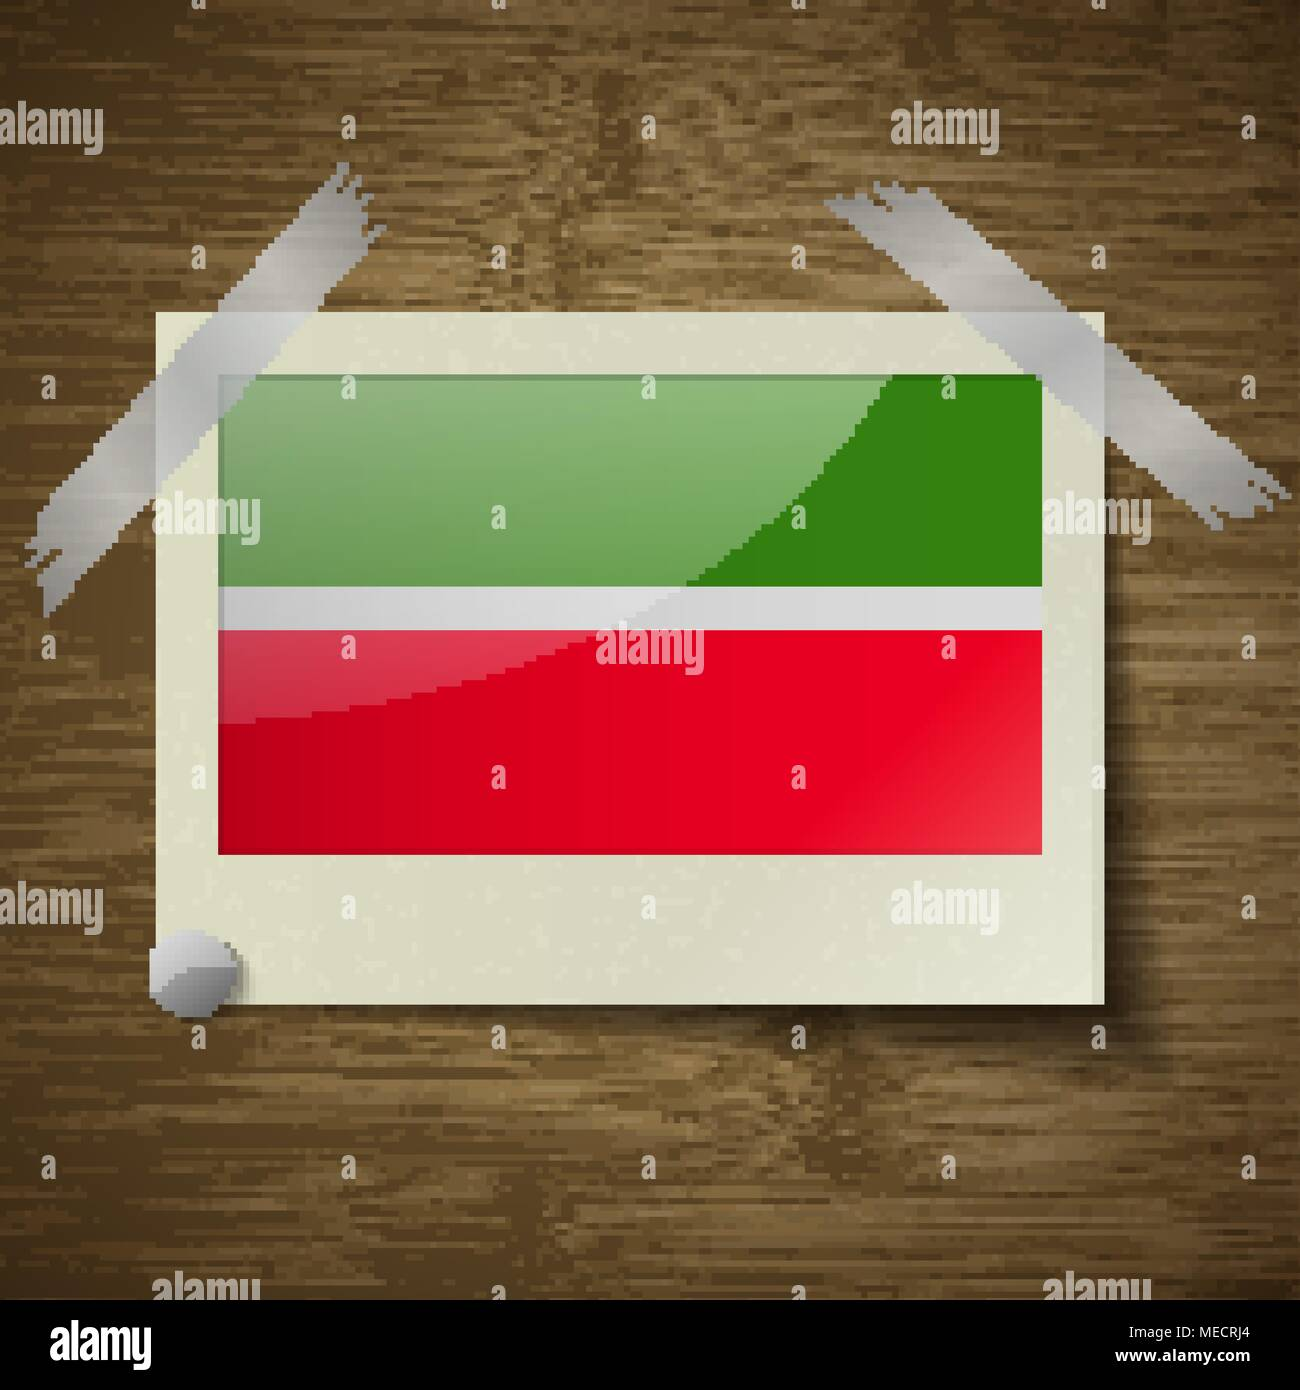 Flags of Tatarstan at frame on wooden texture. Vector illustration - Stock Image